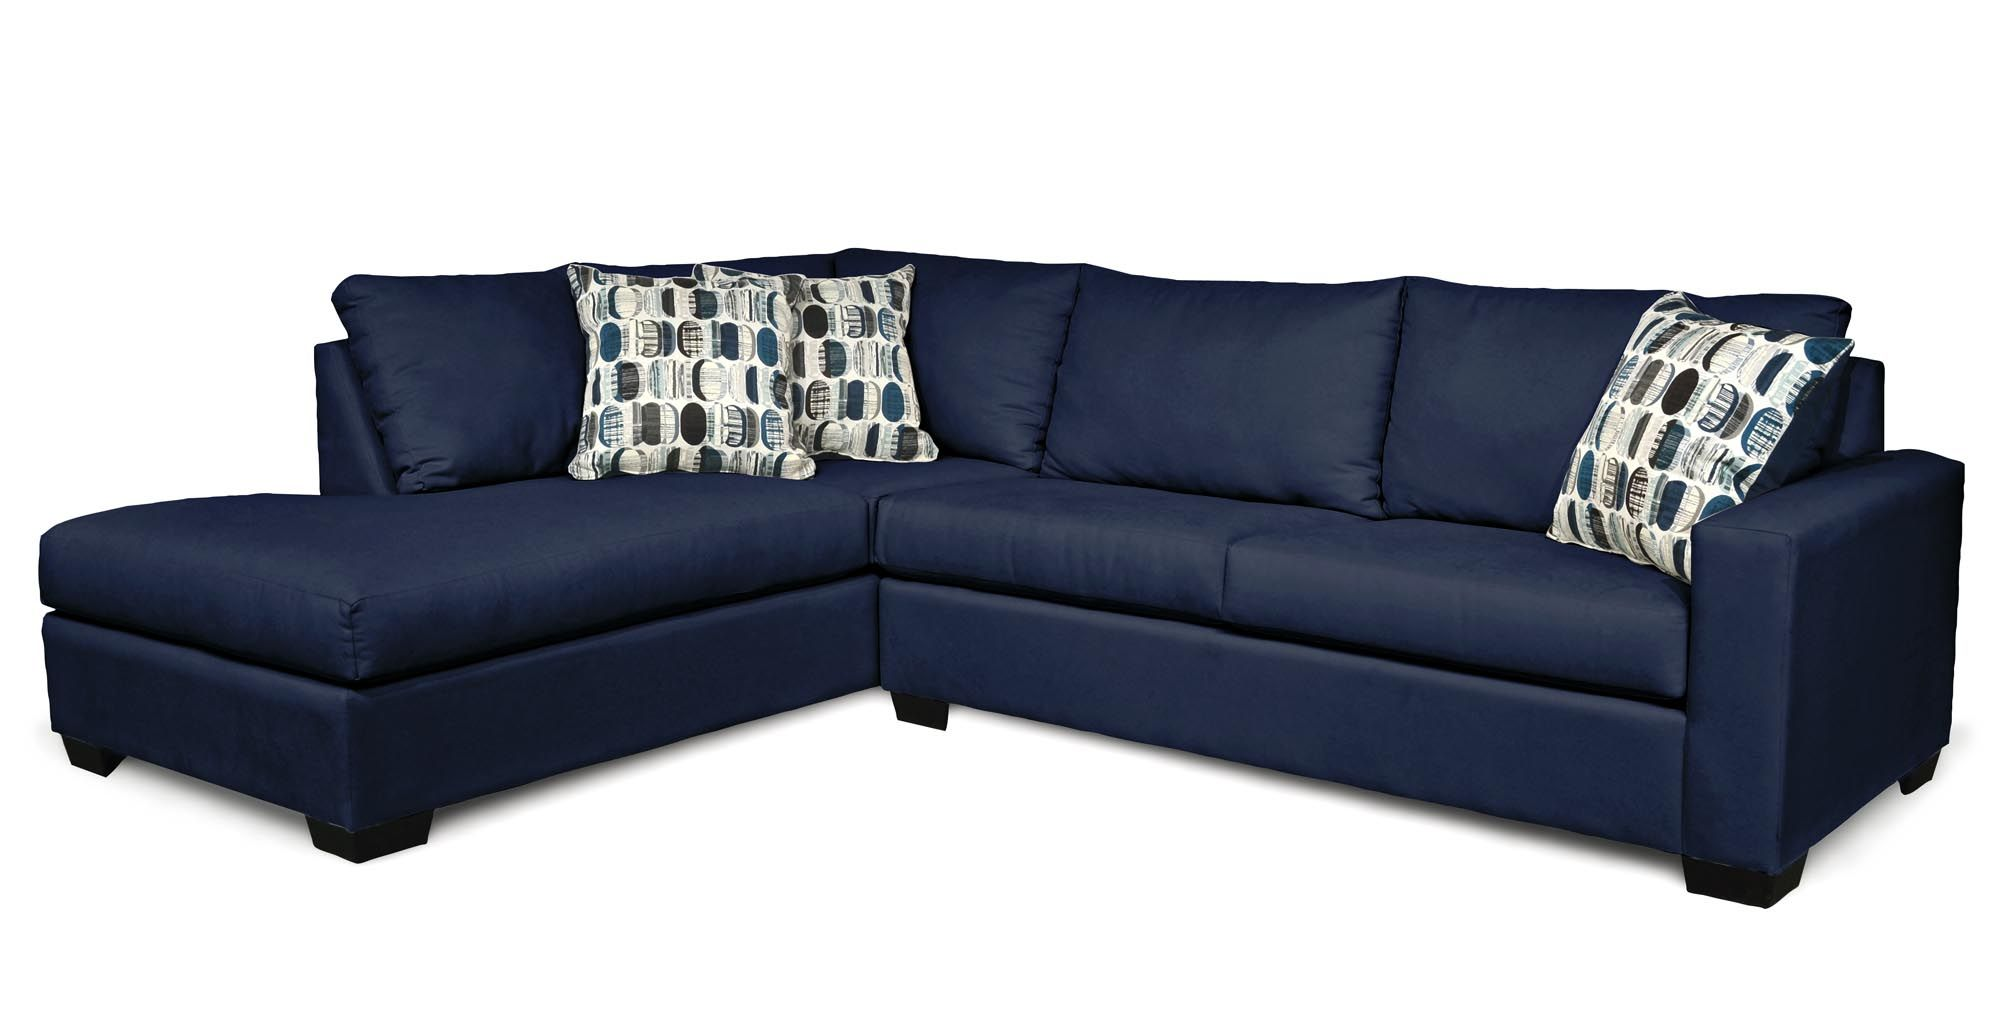 Bellamy Slate 2 Piece Sectional Beauty Rest by Simmons $899 00